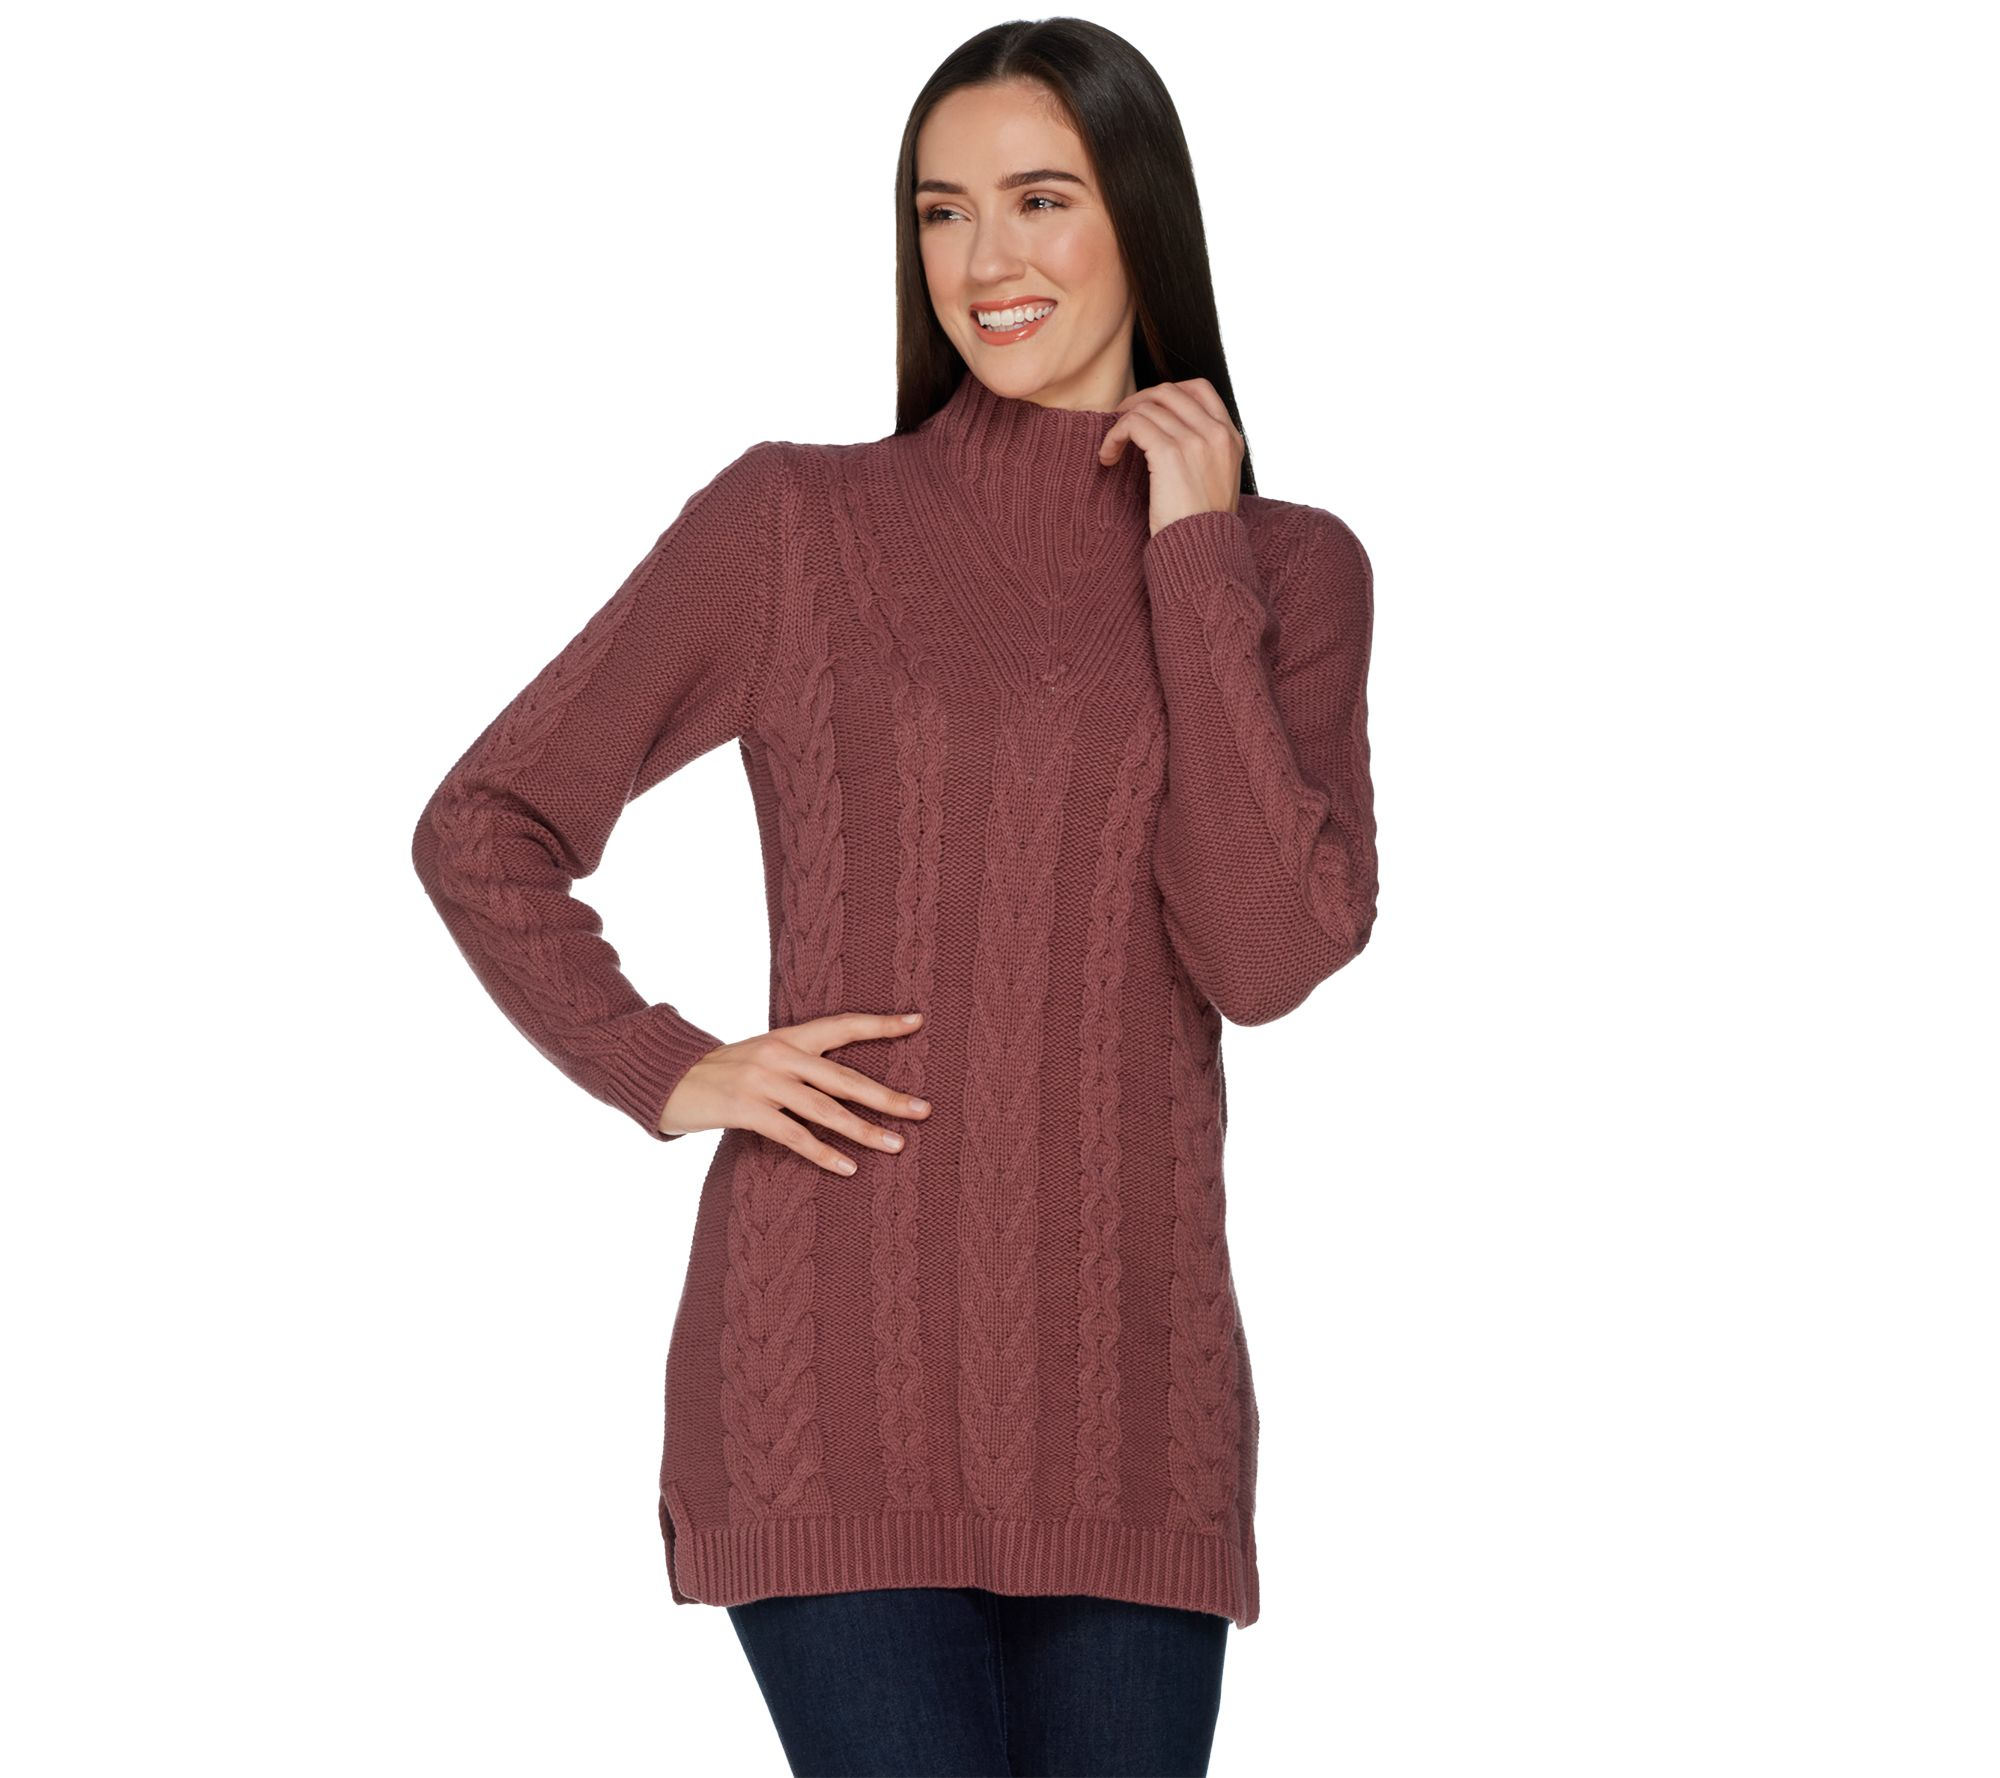 ee60fd9ef41 Denim   Co. Petite Mock Neck Cable Knit Tunic Sweater - Page 1 — QVC.com